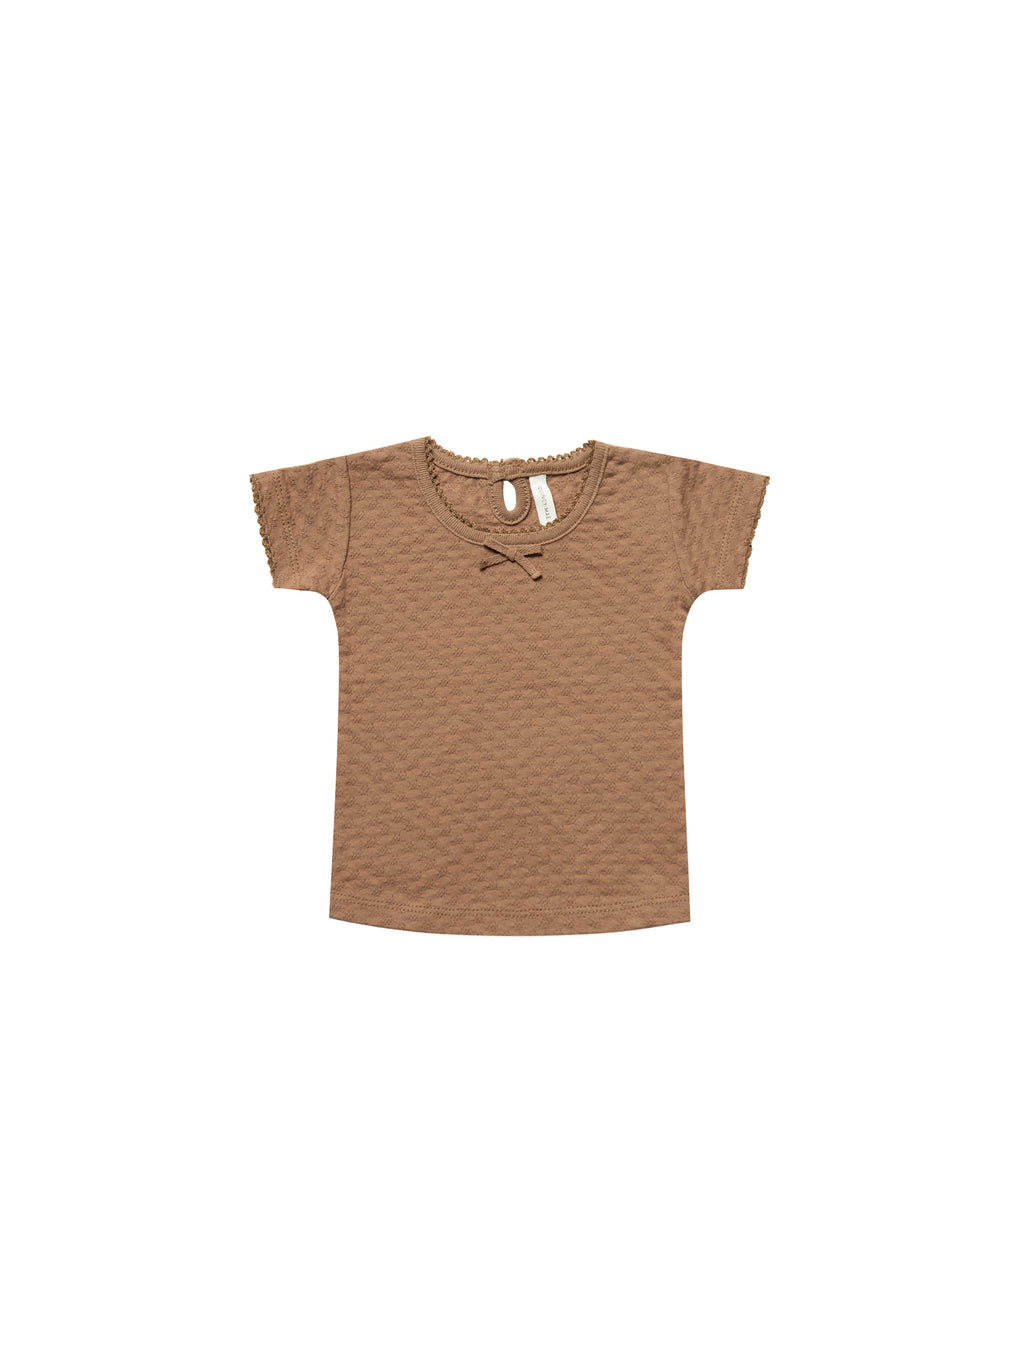 Quincy Mae - Pointelle Tee (Copper)